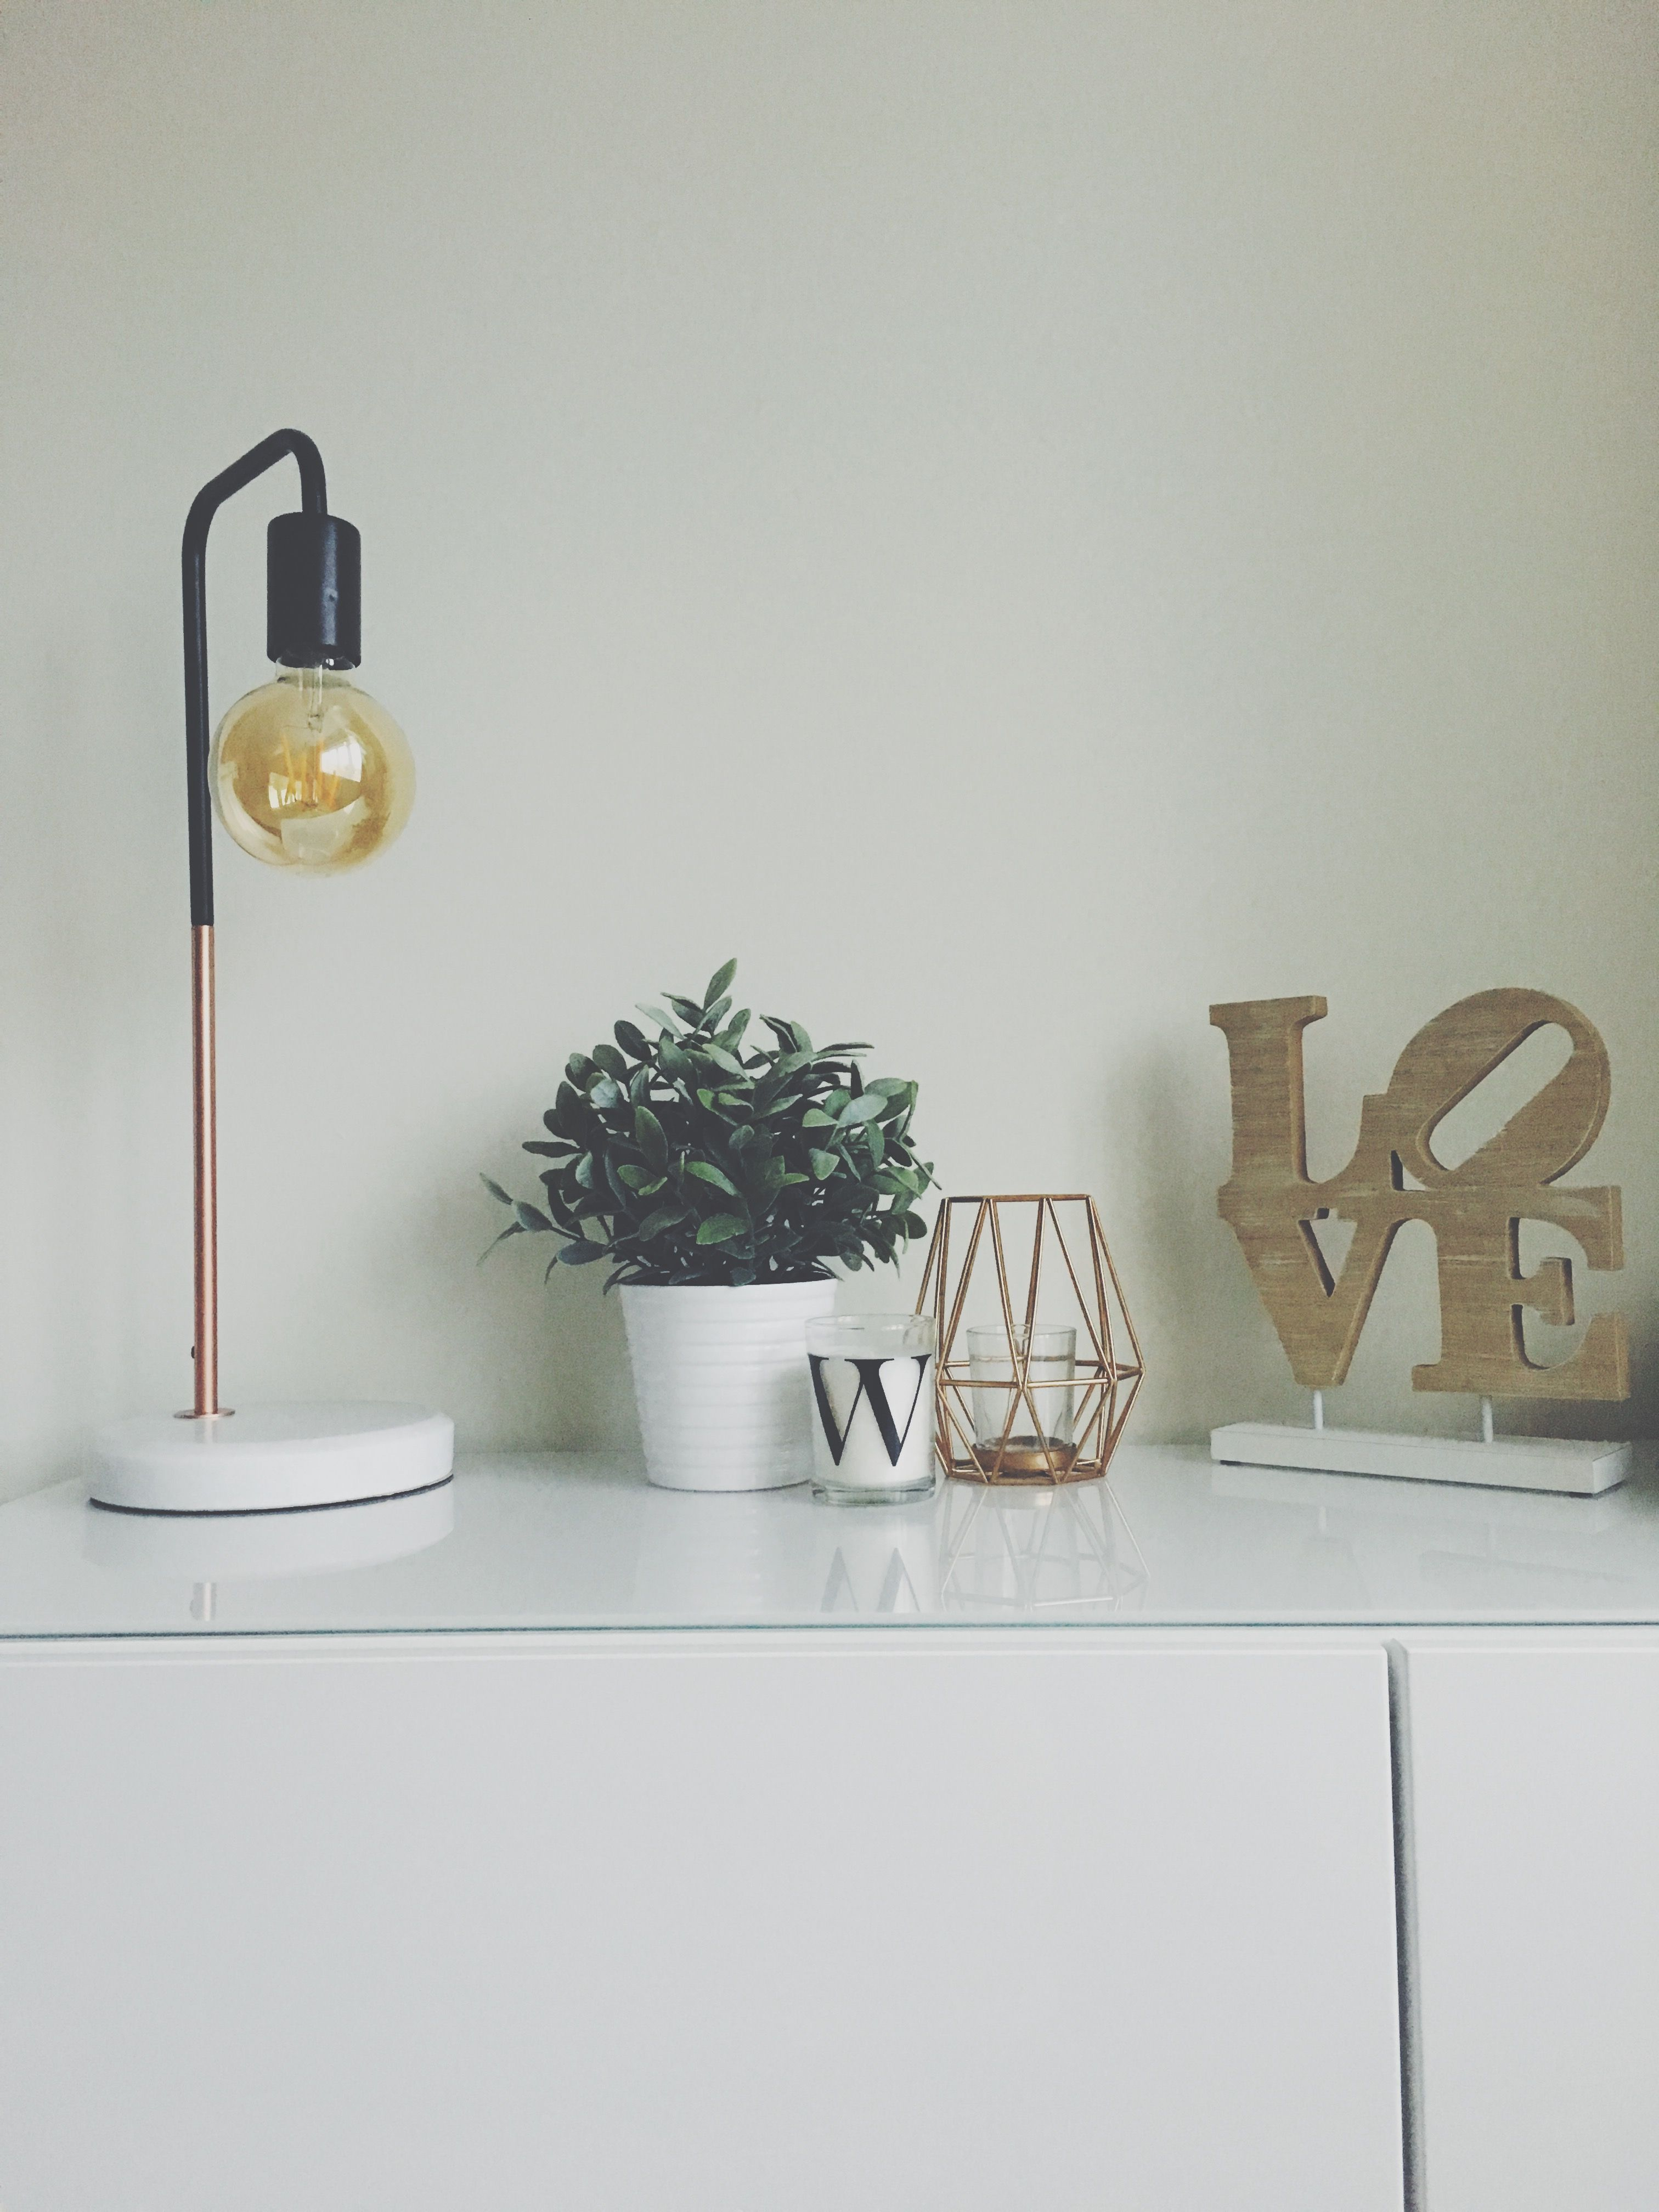 Minimal Sideboard Styling Aldi Lamp Indoor Plant Candle Copper